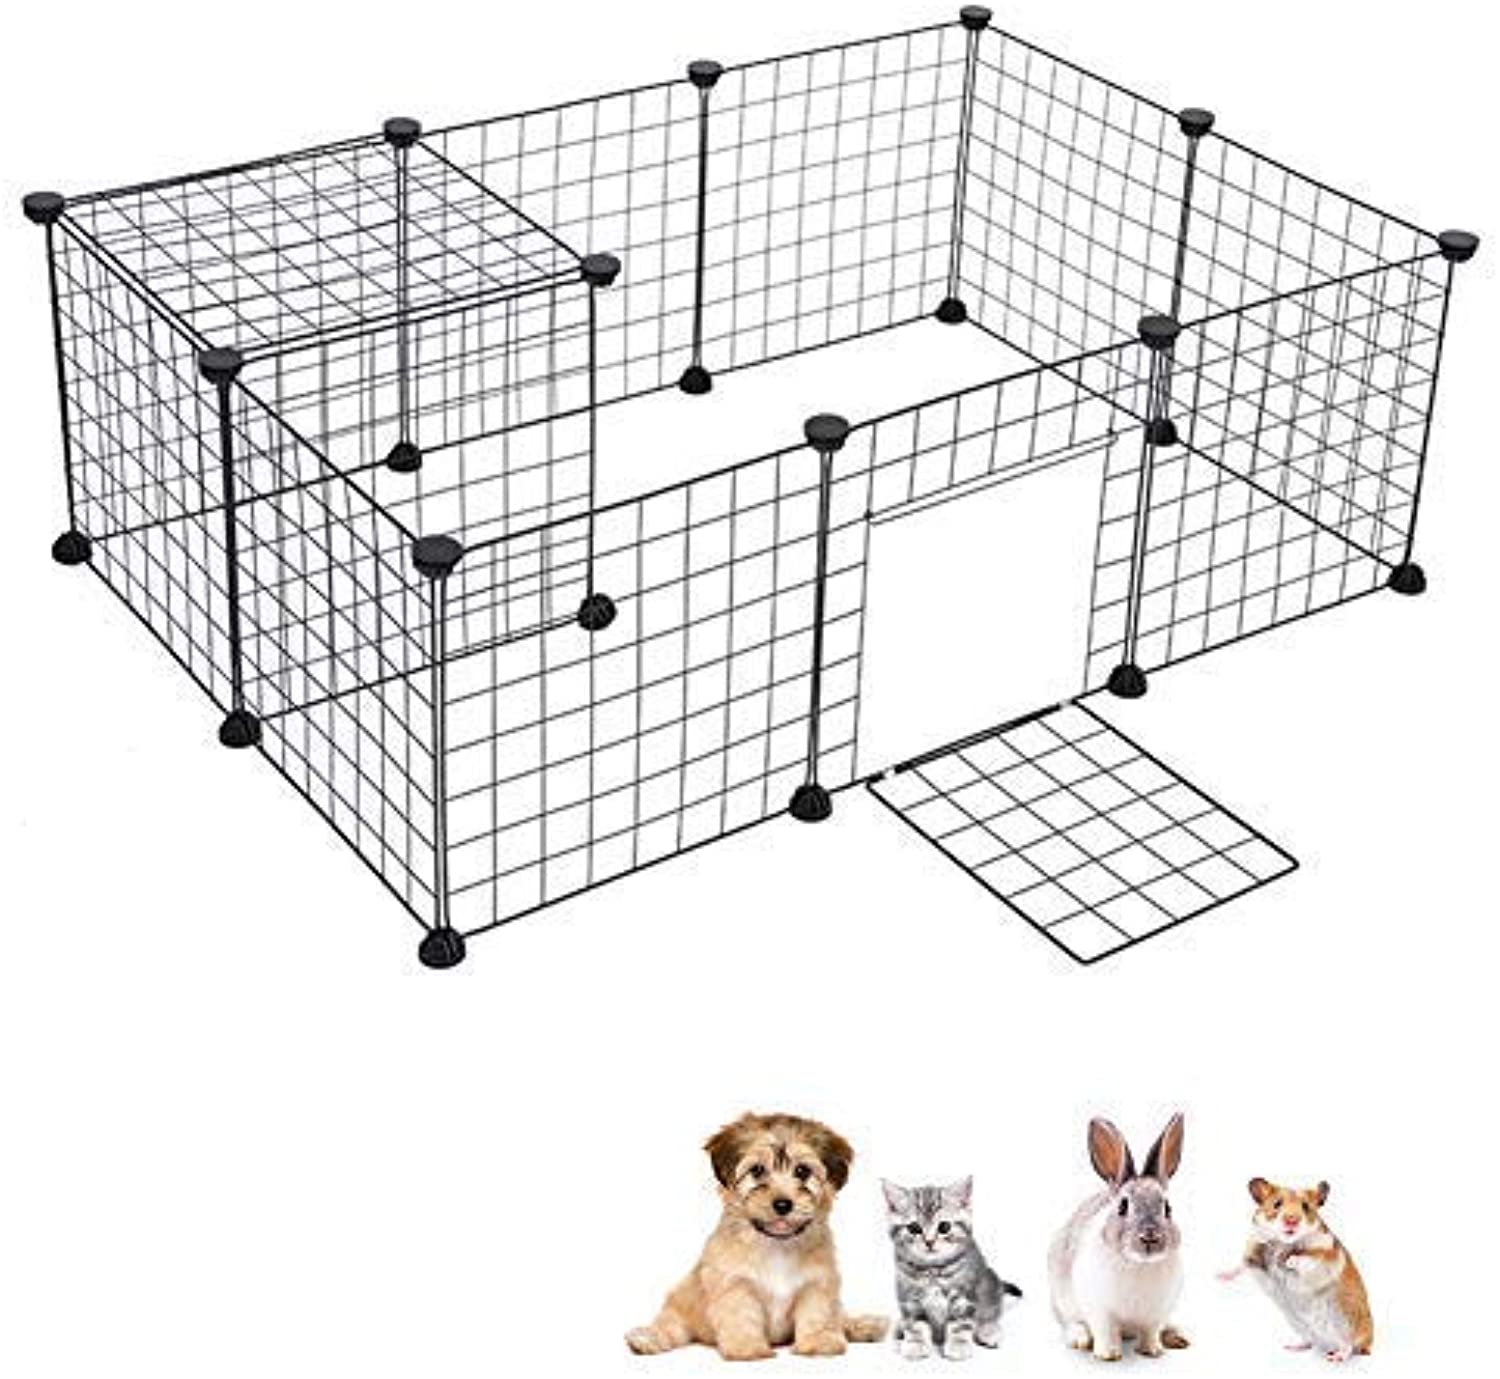 Greensen DIY Dog Kennel, Foldable Pet Playpen Door Cable Tie Metal Wire Animal Grid Cage Guinea Pig Hedgehog Kitten Puppy Hedgehog Hamster Rabbit, Outdoor Indoor, Black(12 Panels)